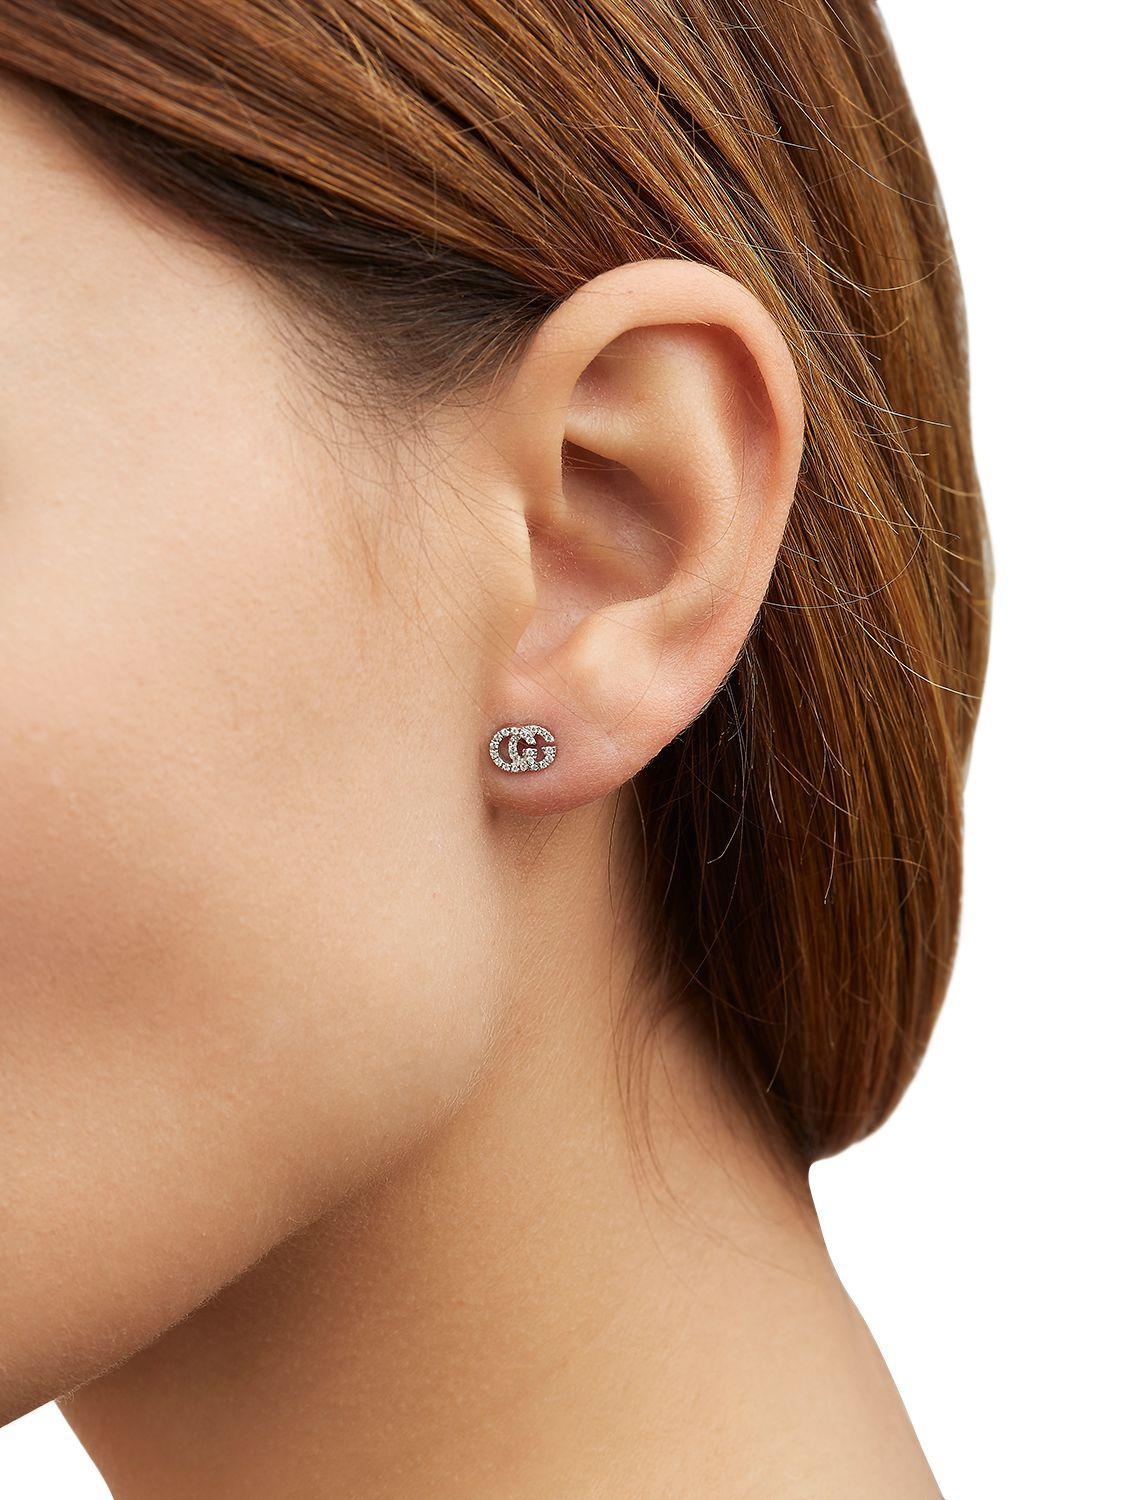 d14a0d625 Gallery. Previously sold at: LUISA VIA ROMA · Women's Diamond Earrings